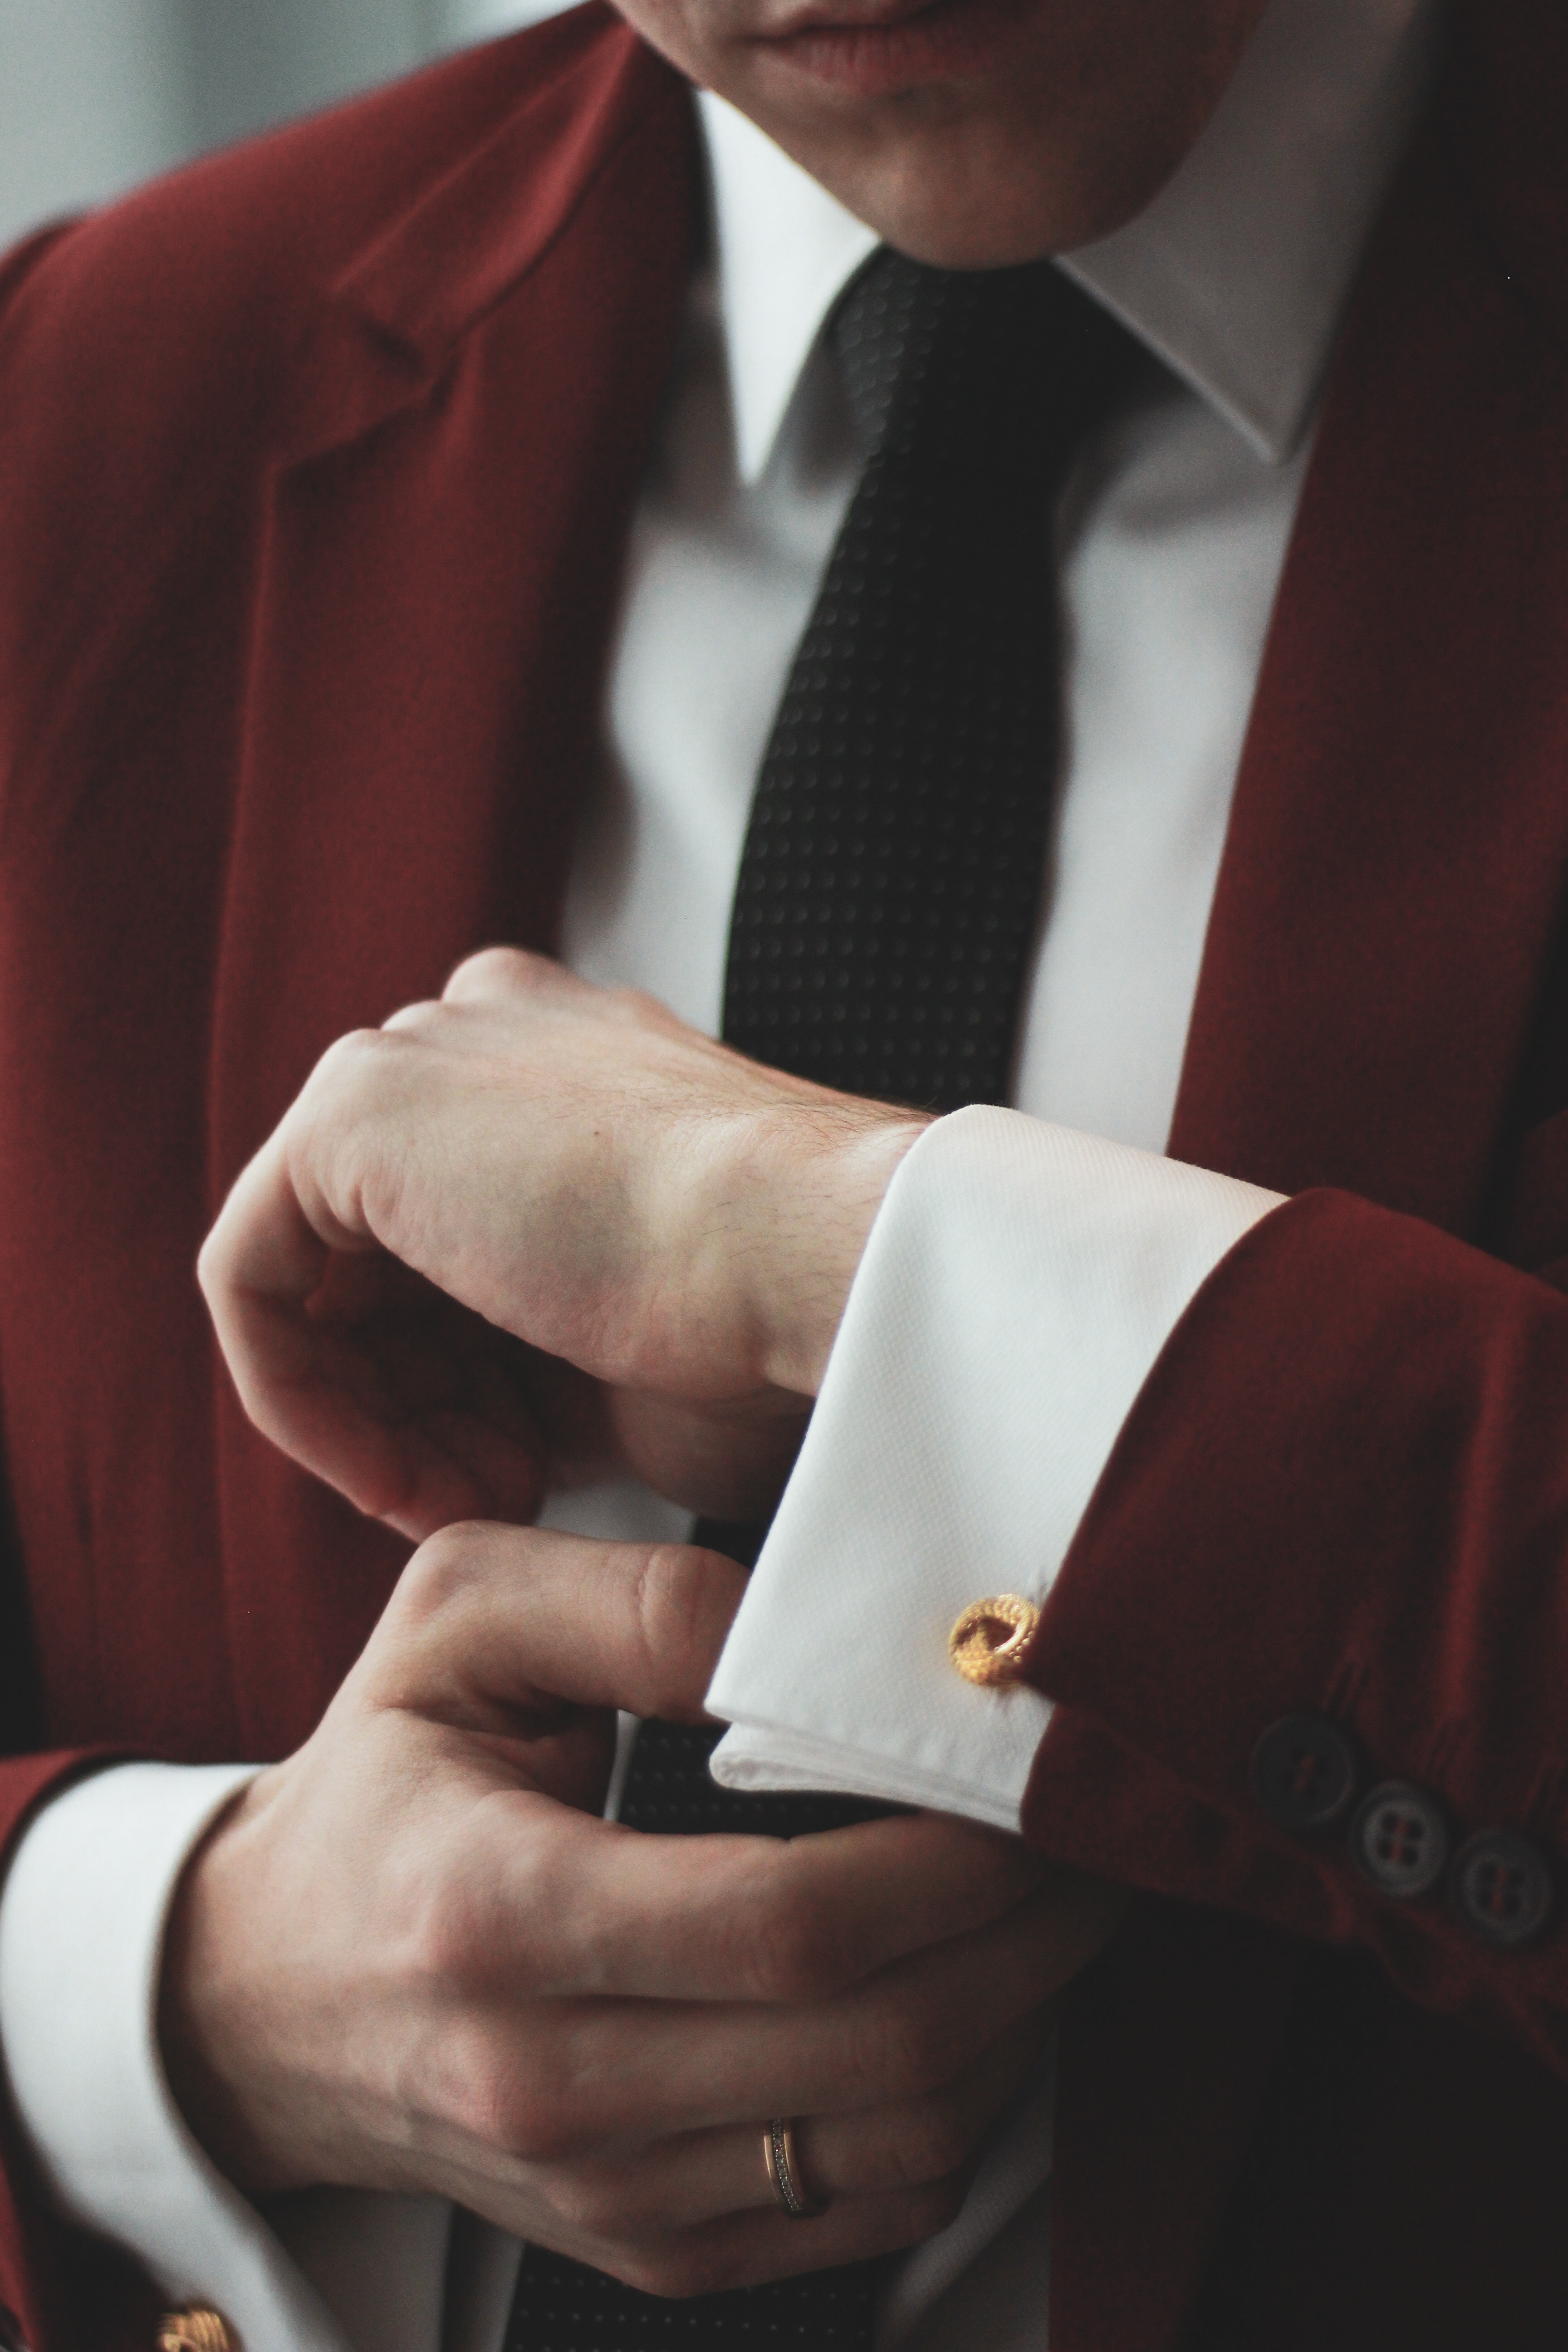 HOW TO TIE A NECKTIE WITH A KENT KNOT